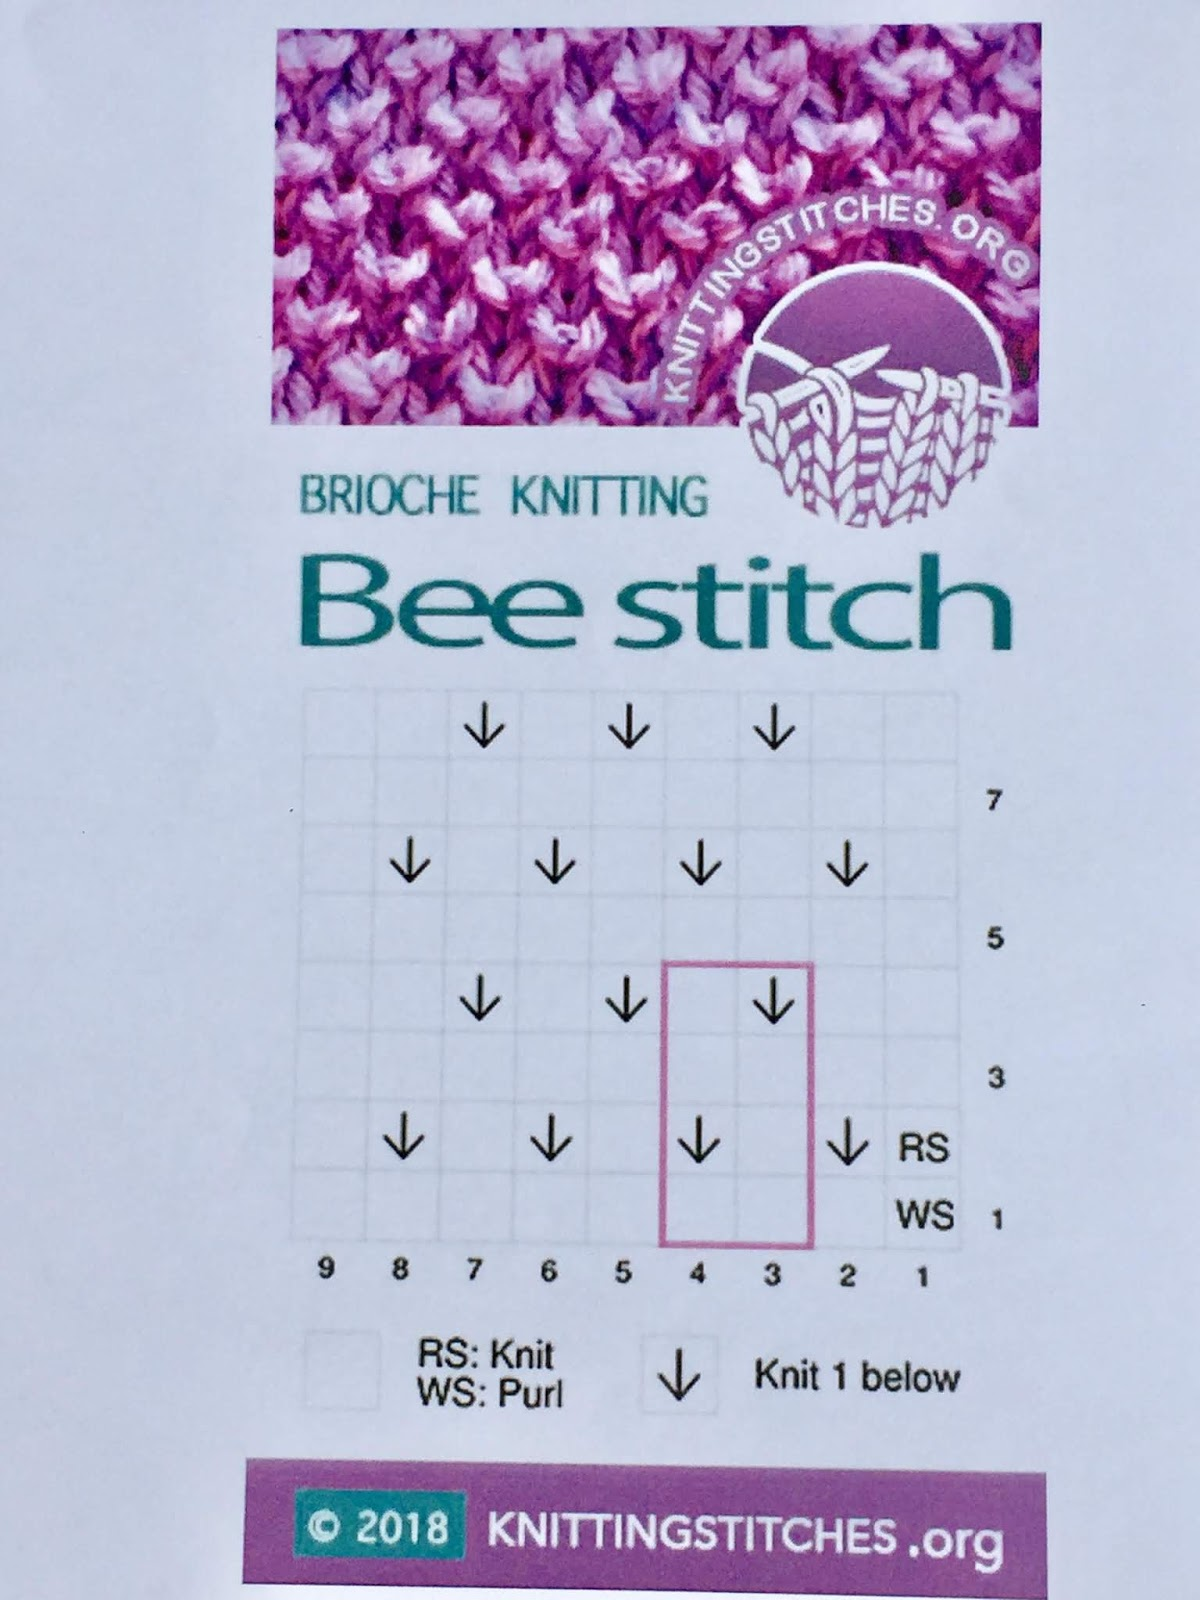 Knitting Stitches 2018 -  Bee Brioche